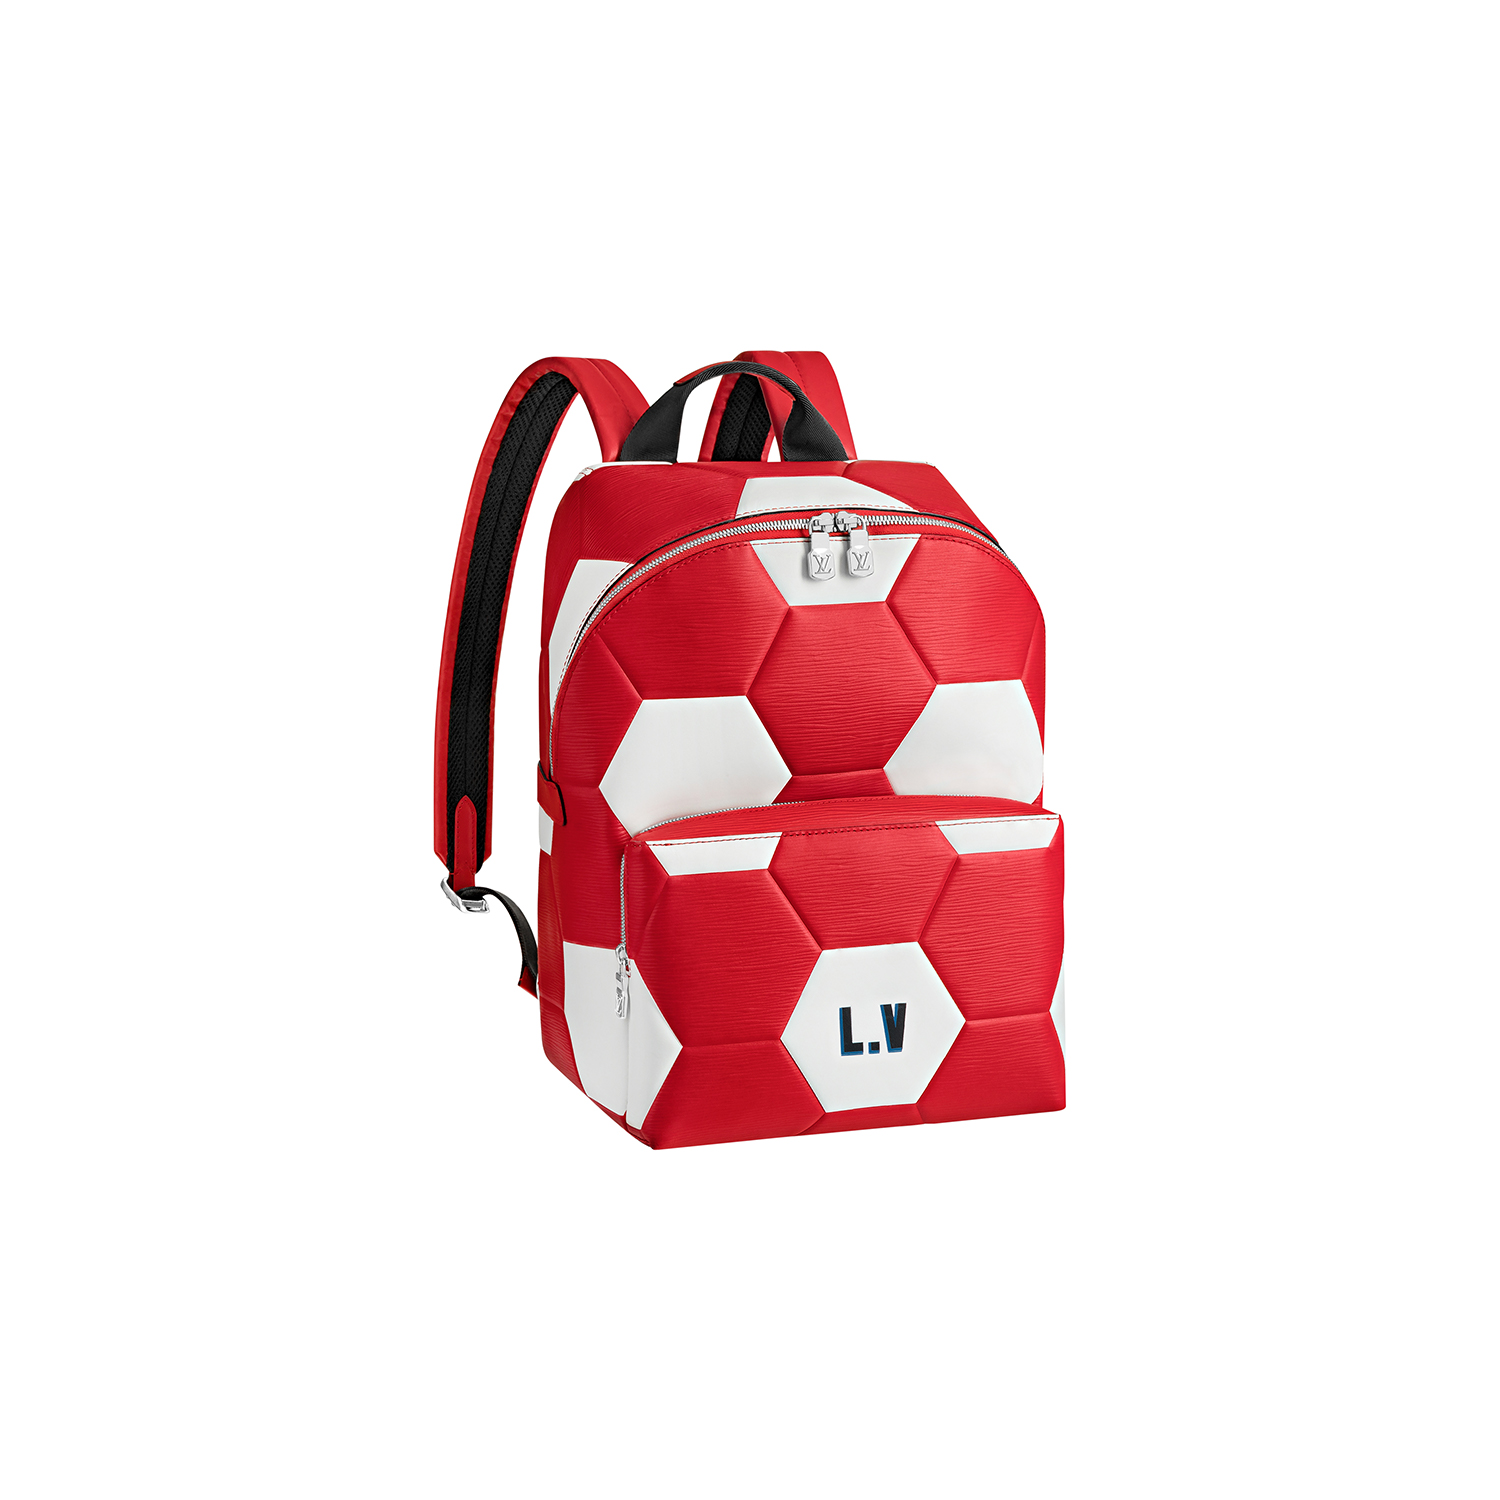 FIFA APOLLO BACKPACK - €2700M52117EPI WORLDCUP ROUGE